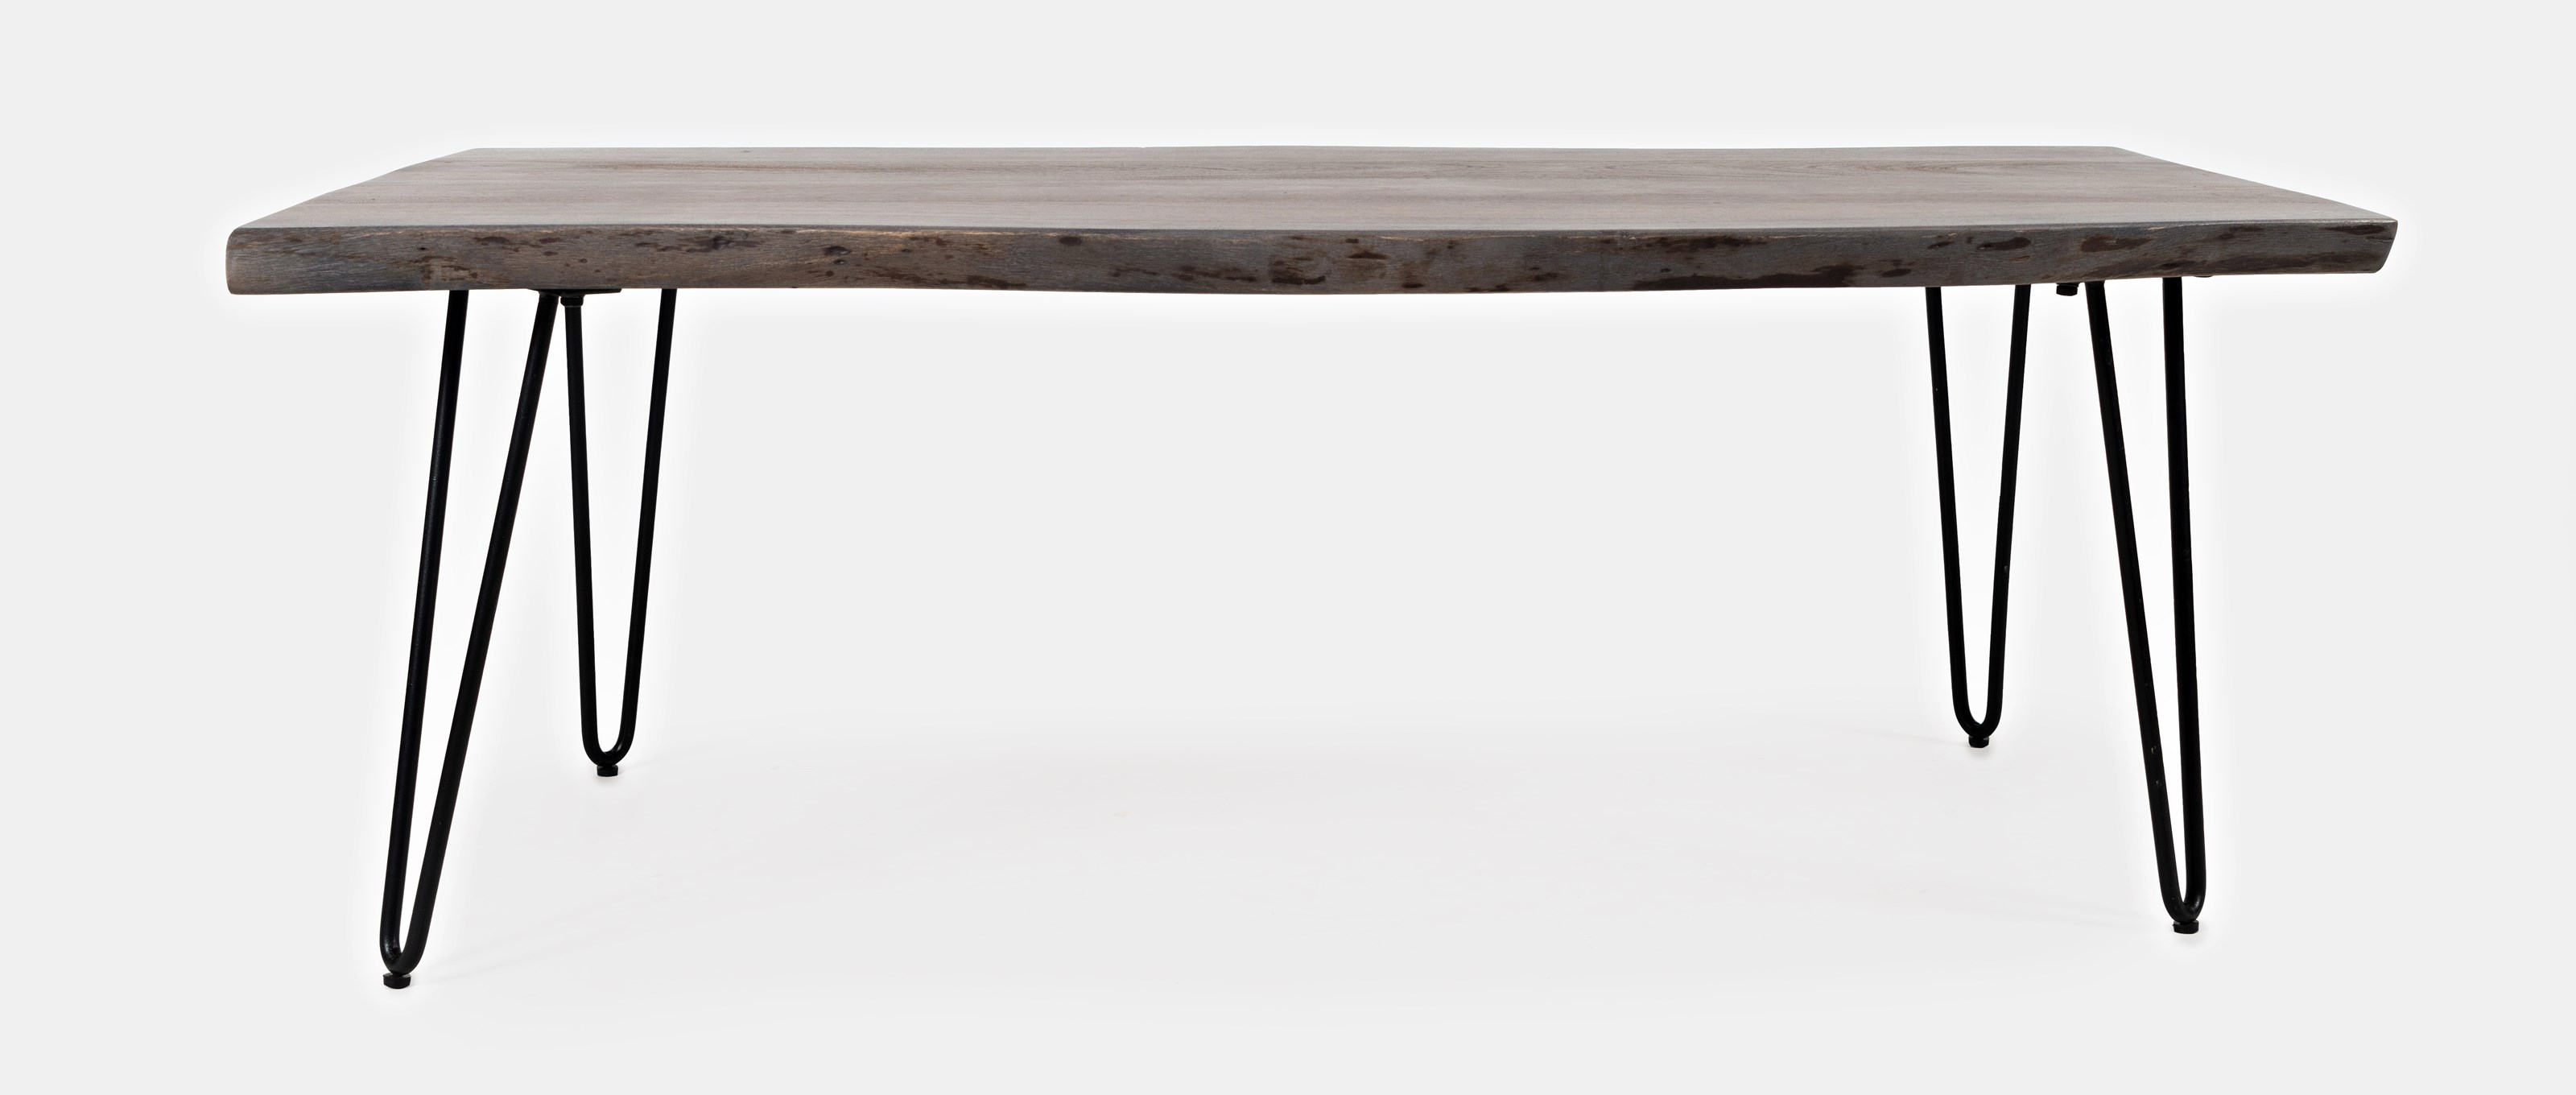 Nature's Edge Coffee Table by Jofran at Jofran